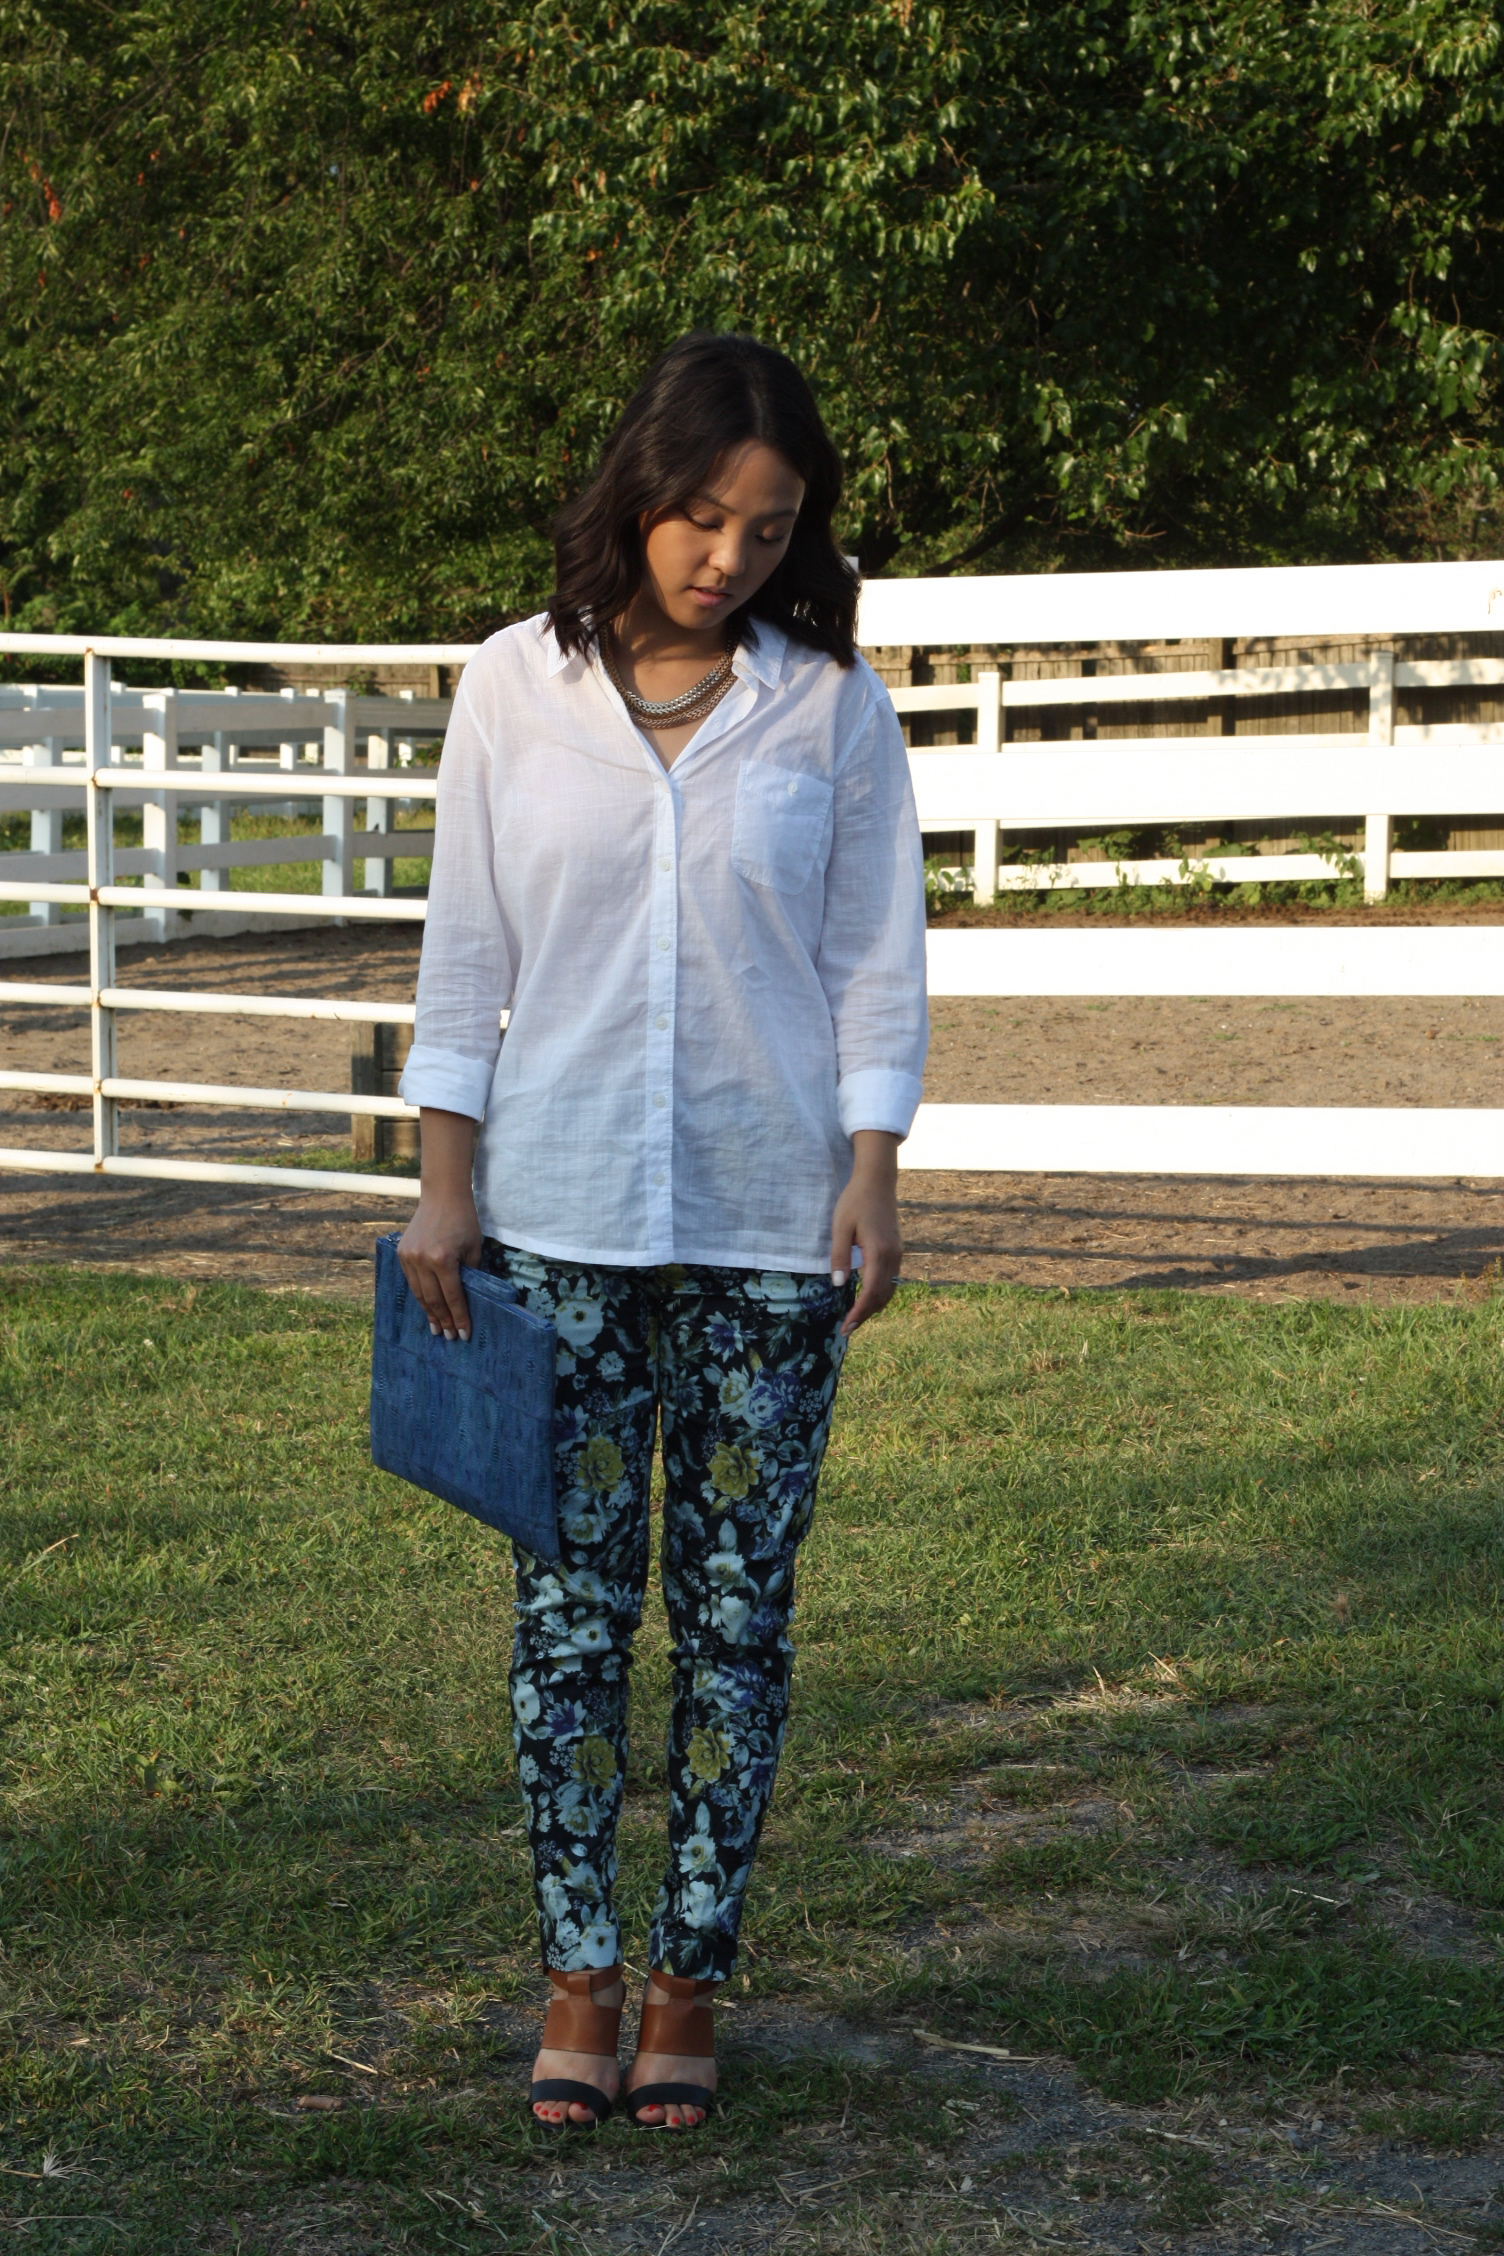 Shirt: Nordstrom, Pants: H&M, Shoes: Steve Madden, Bag: Latico, Nails: Essie Ballet Slippers